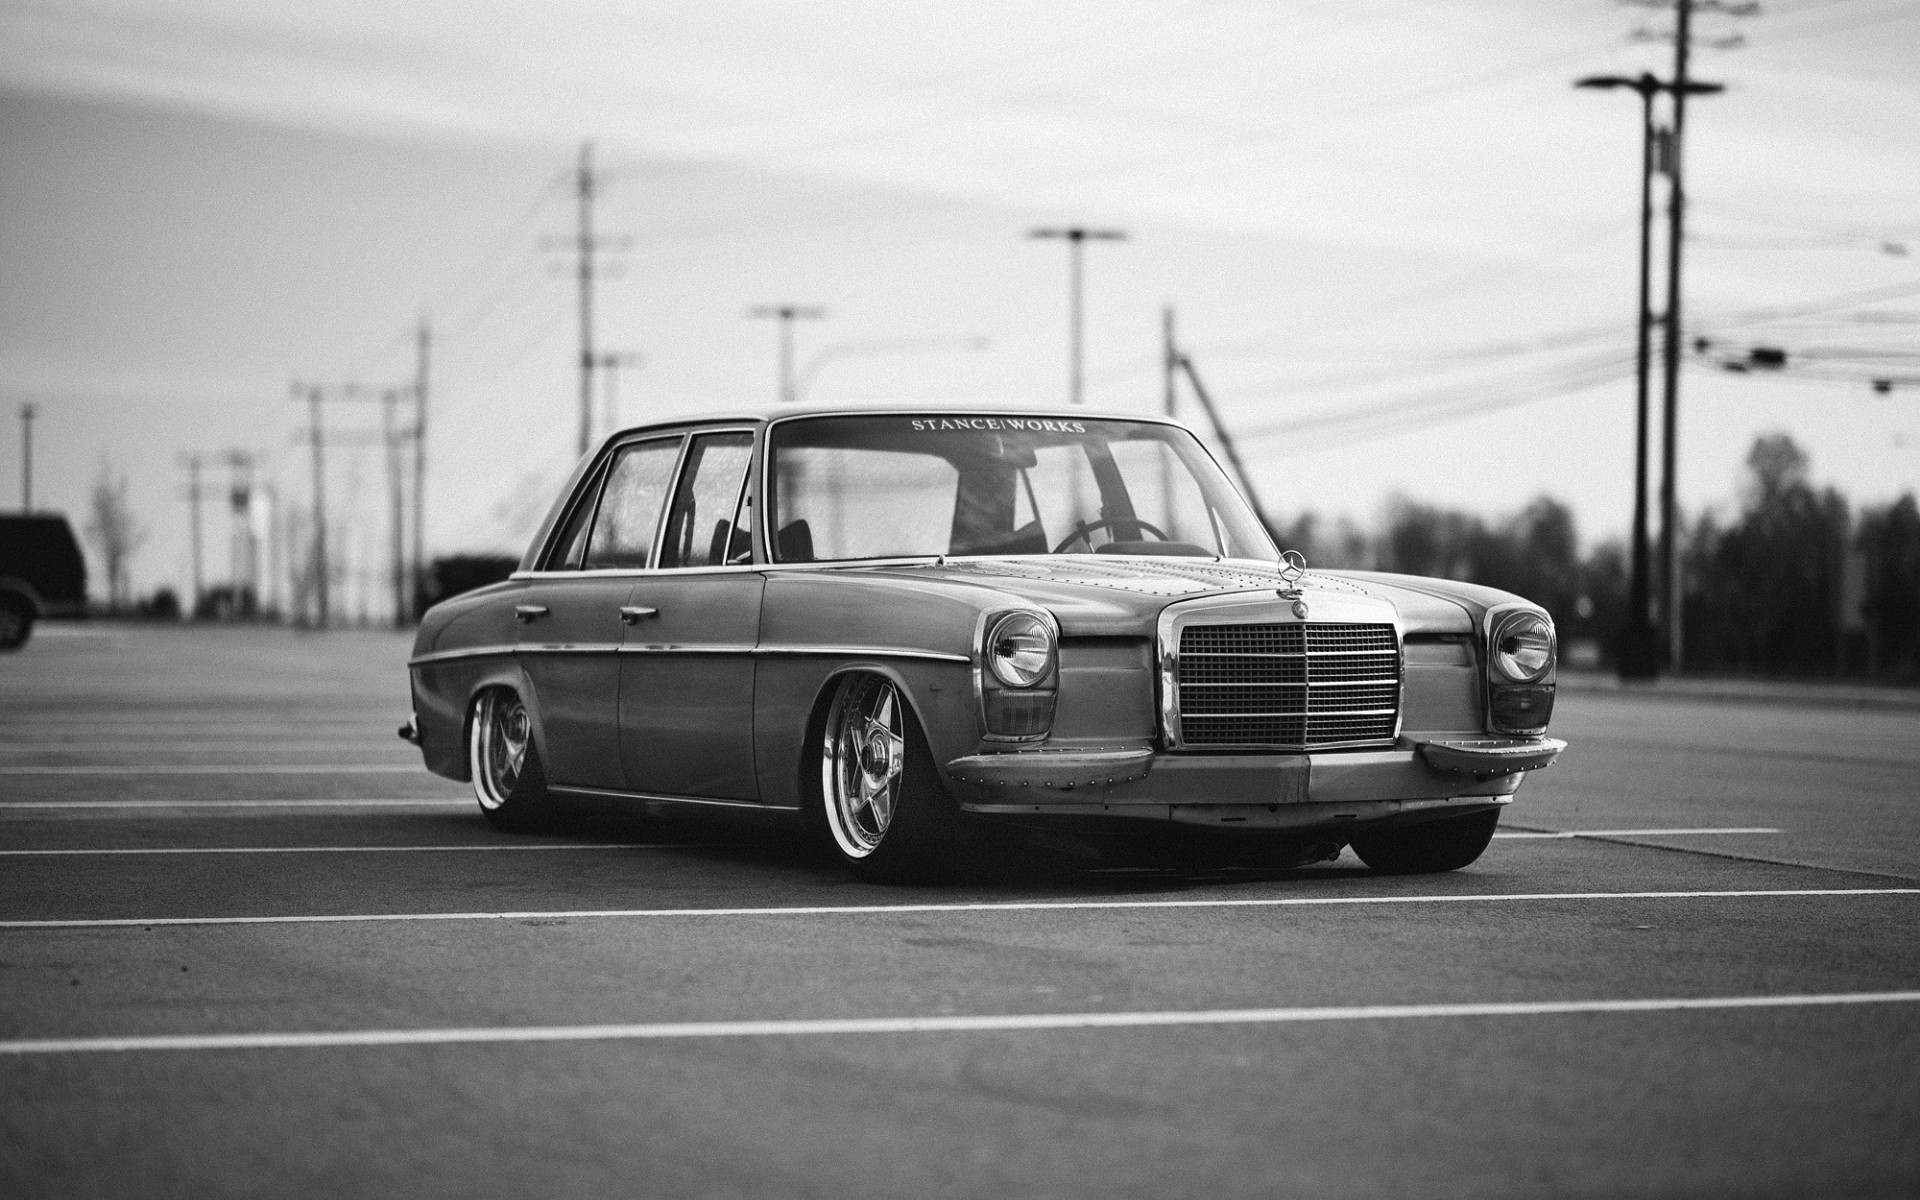 Classic Muscle Car Wallpapers Hd 1680x1050 Mercedes Benz Car Stanceworks Stance Wallpapers Hd